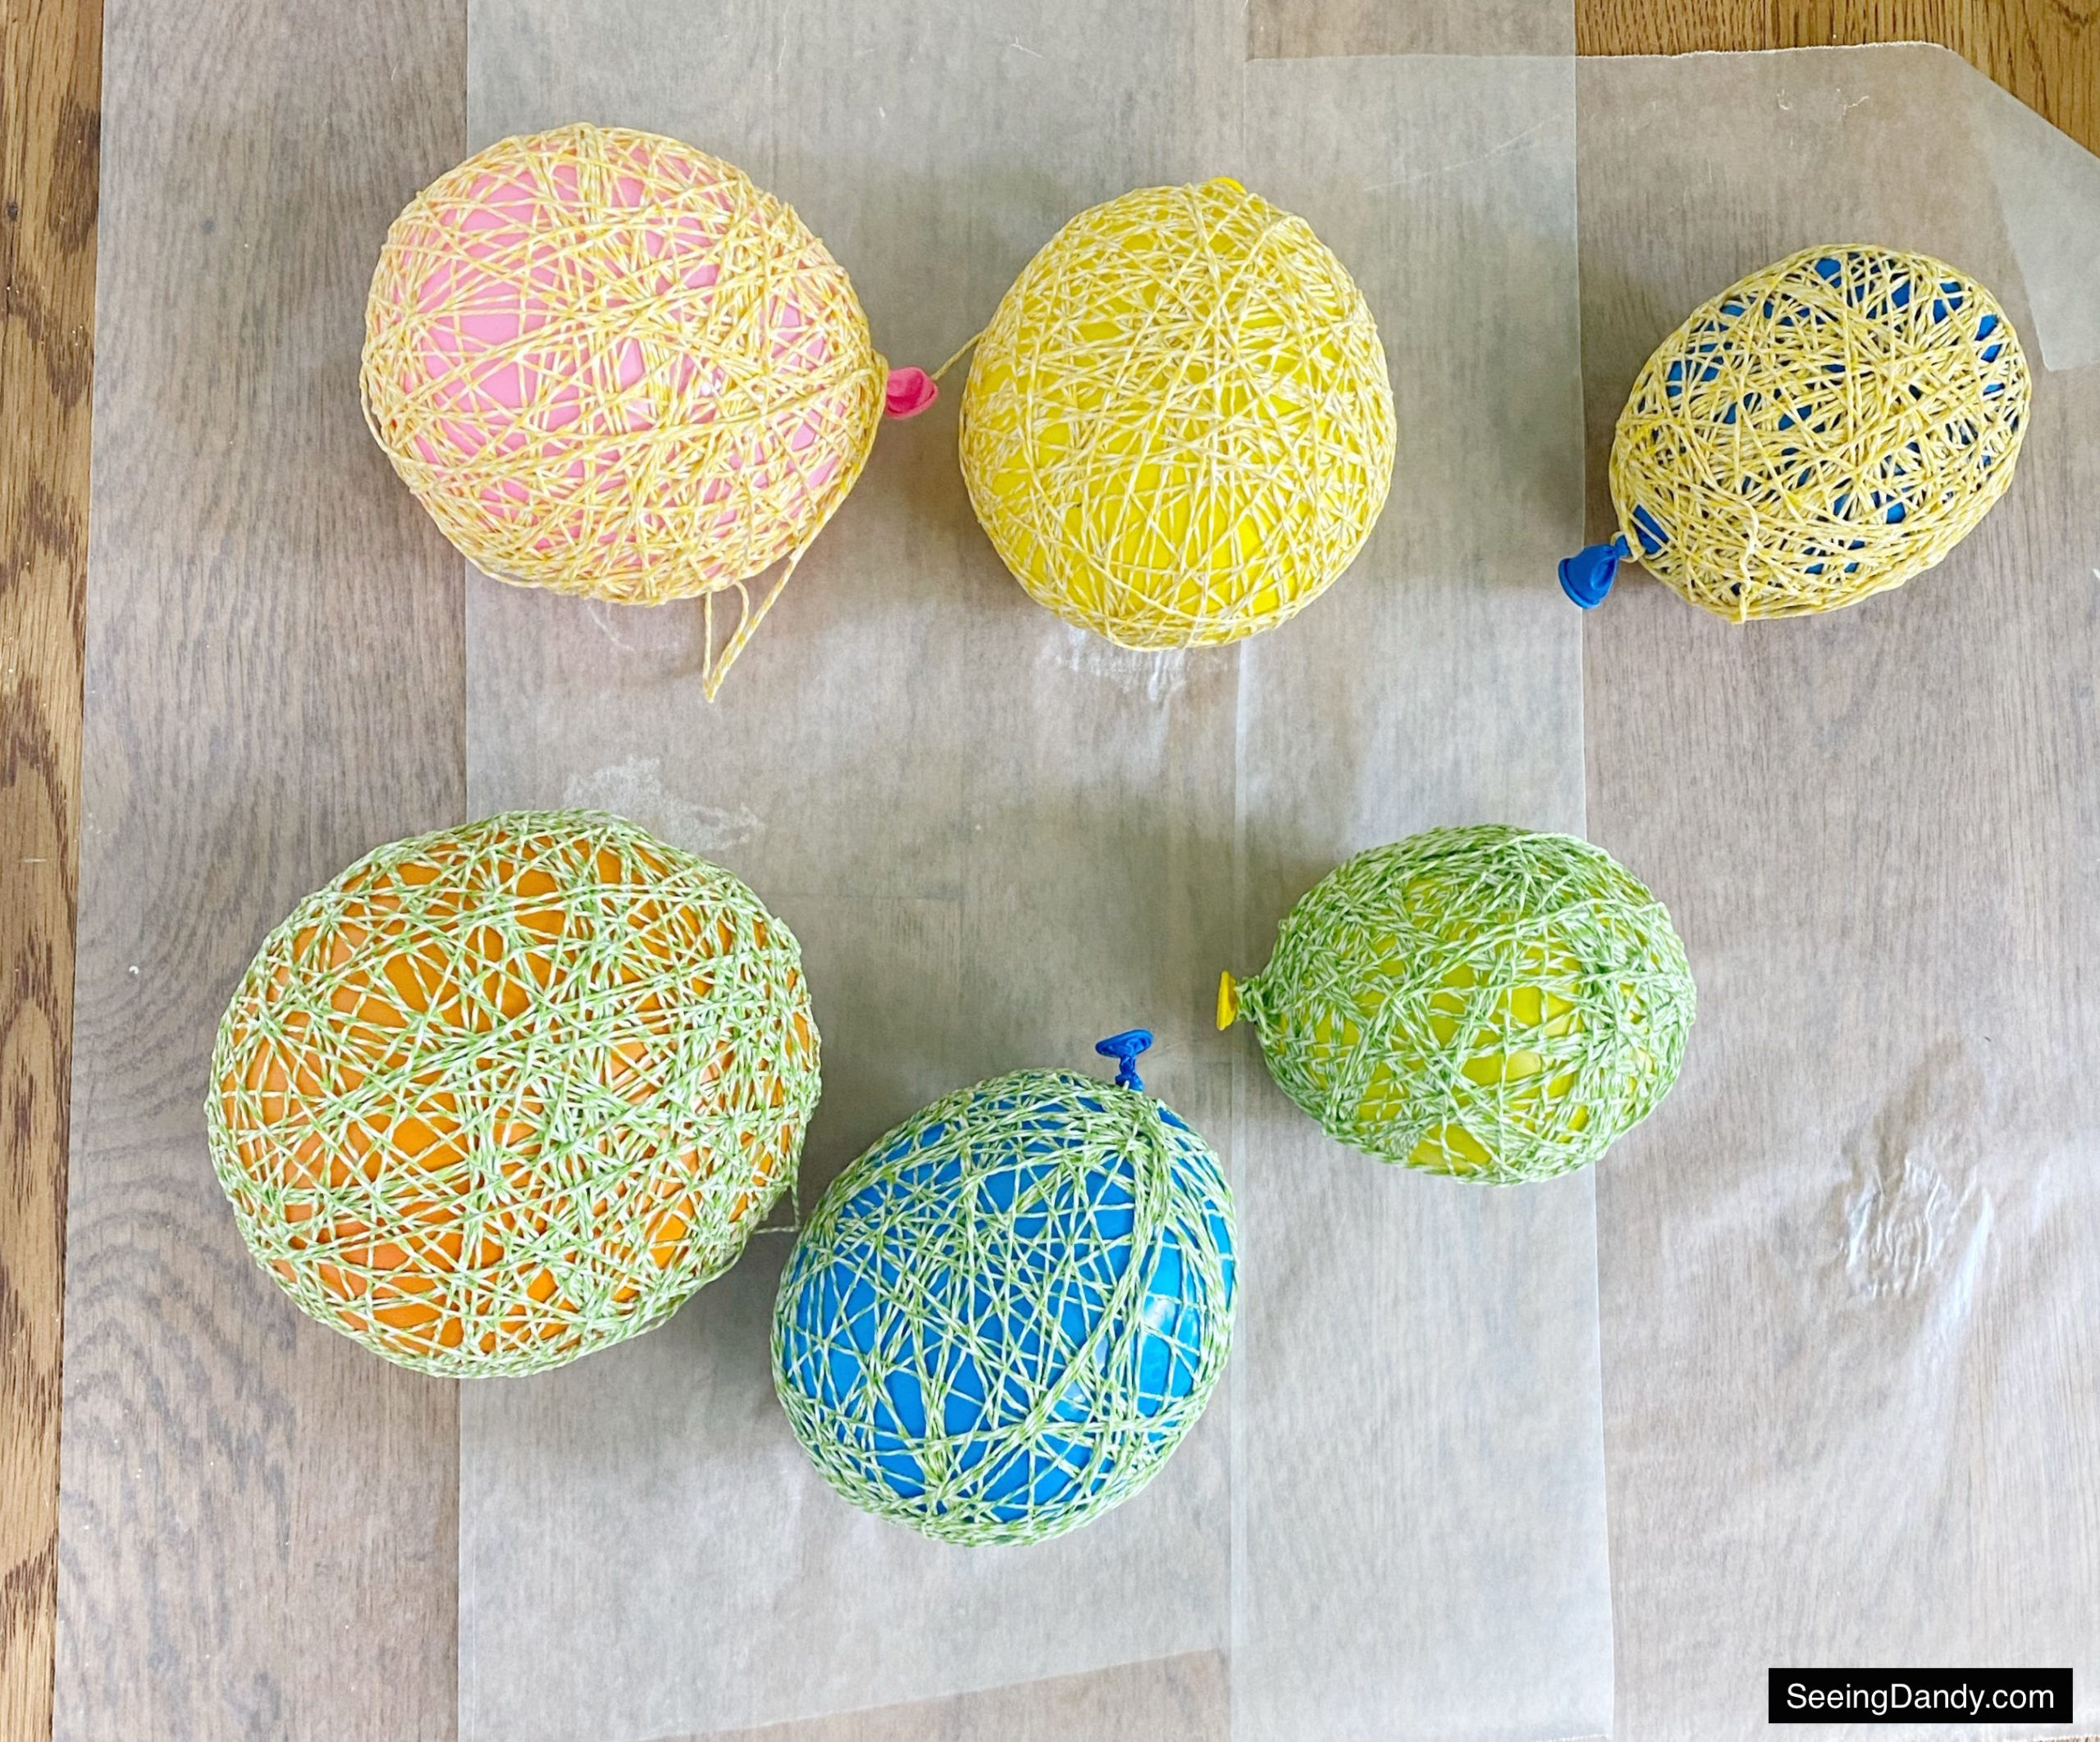 yellow green white string, string easter eggs, colorful balloons, yellow balloon, blue balloon, orange balloon, pink balloon, wax paper, diy string easter eggs